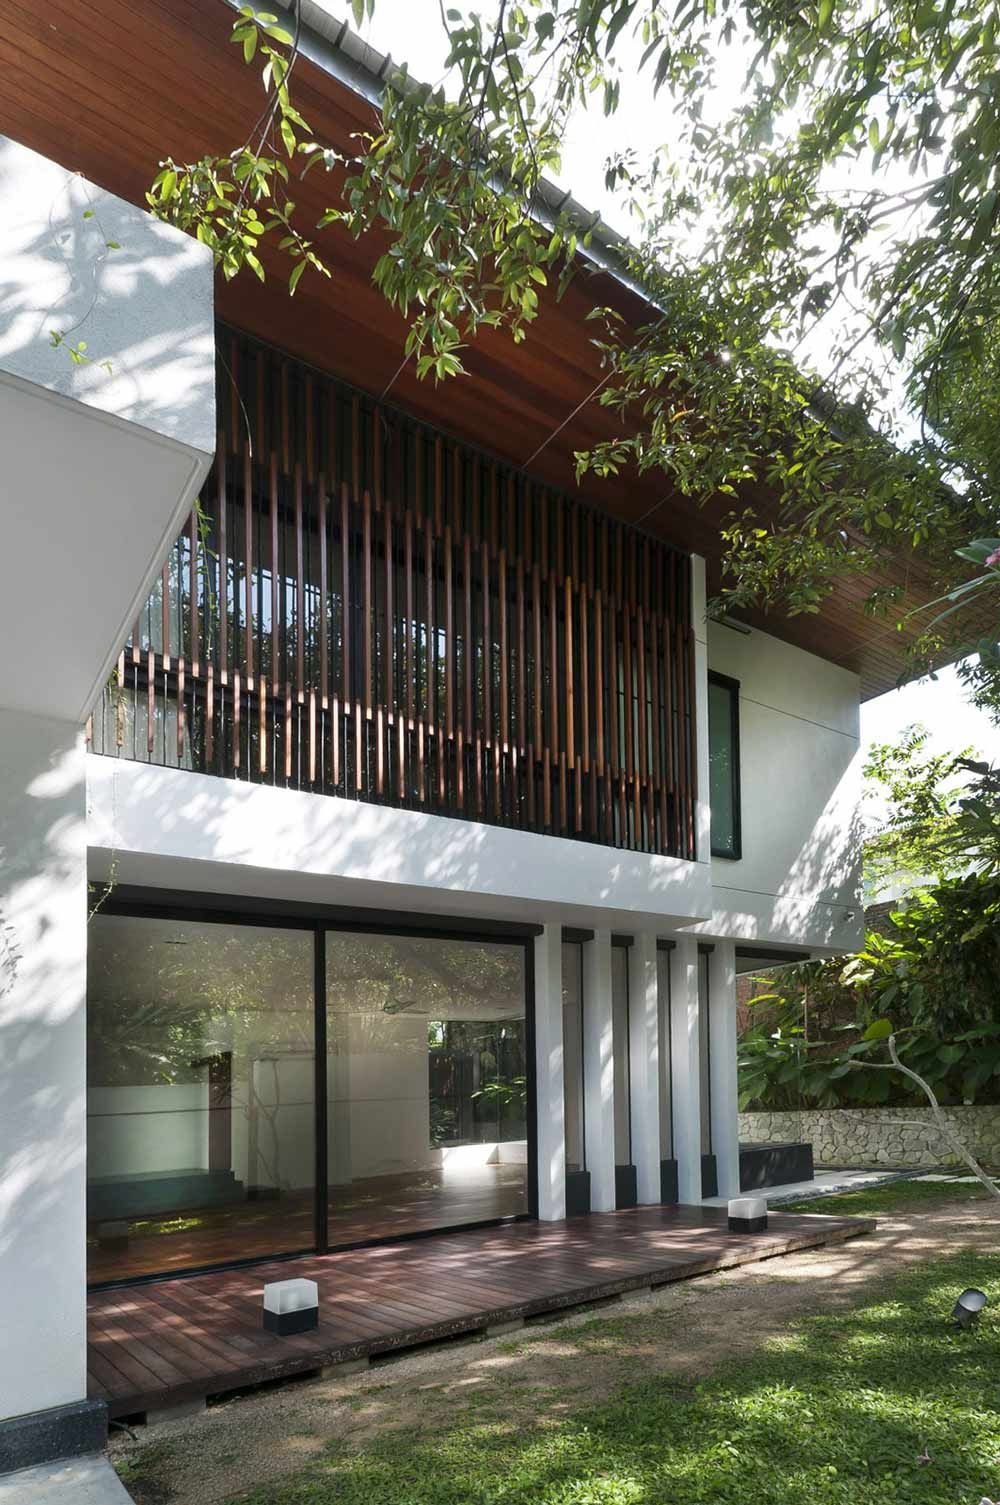 1000+ images about modern malaysian homes on Pinterest - ^